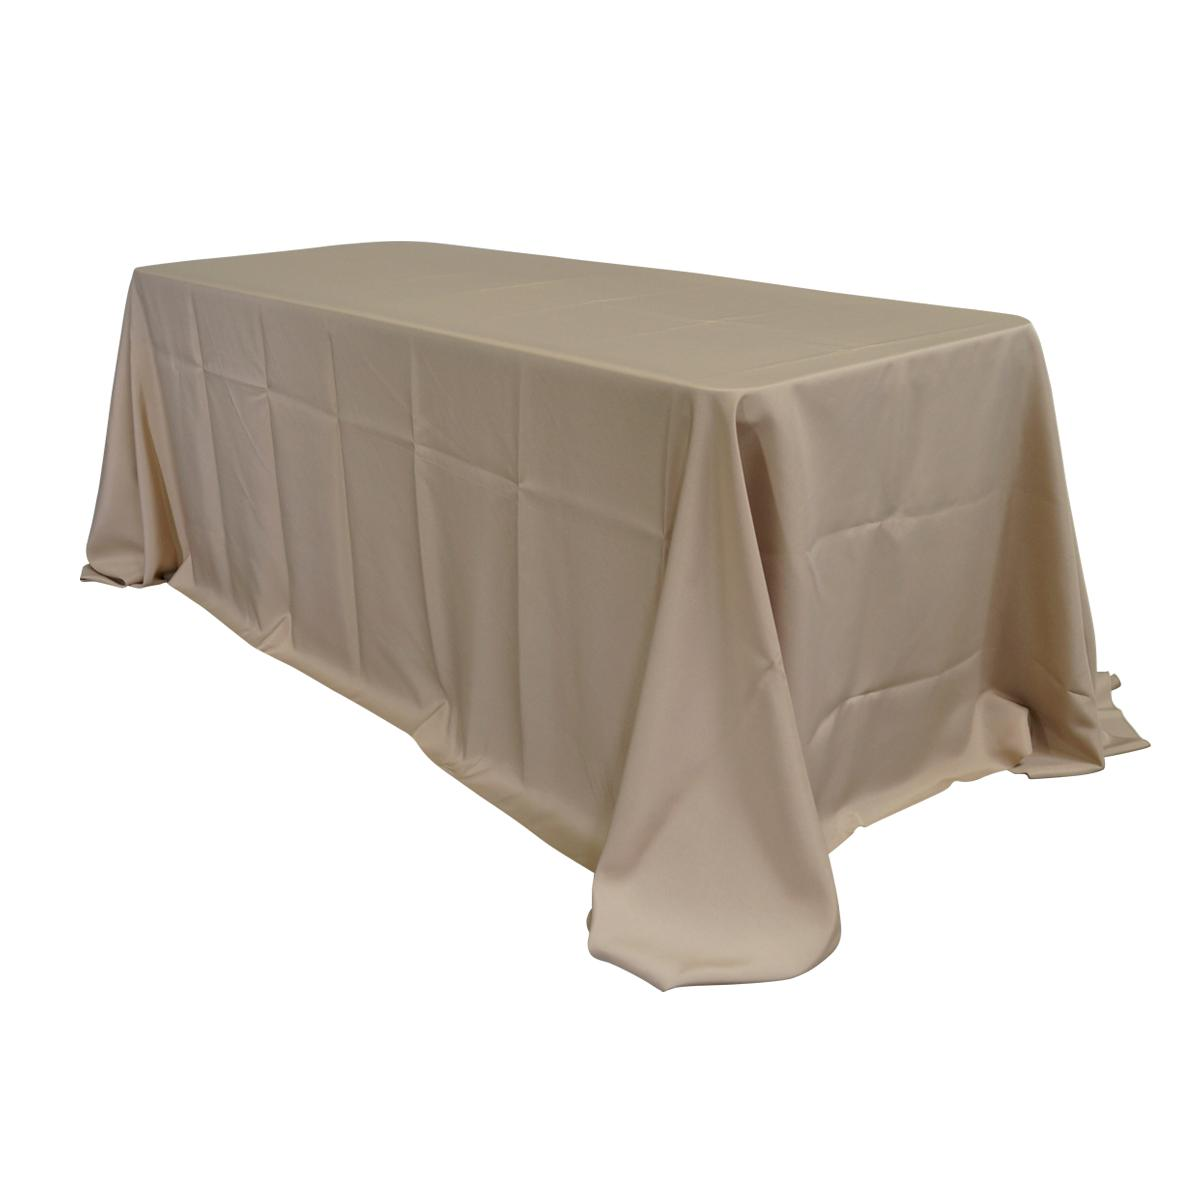 "Economy Polyester Poplin 90""x132"" Rectangular Tablecloth - Champagne"